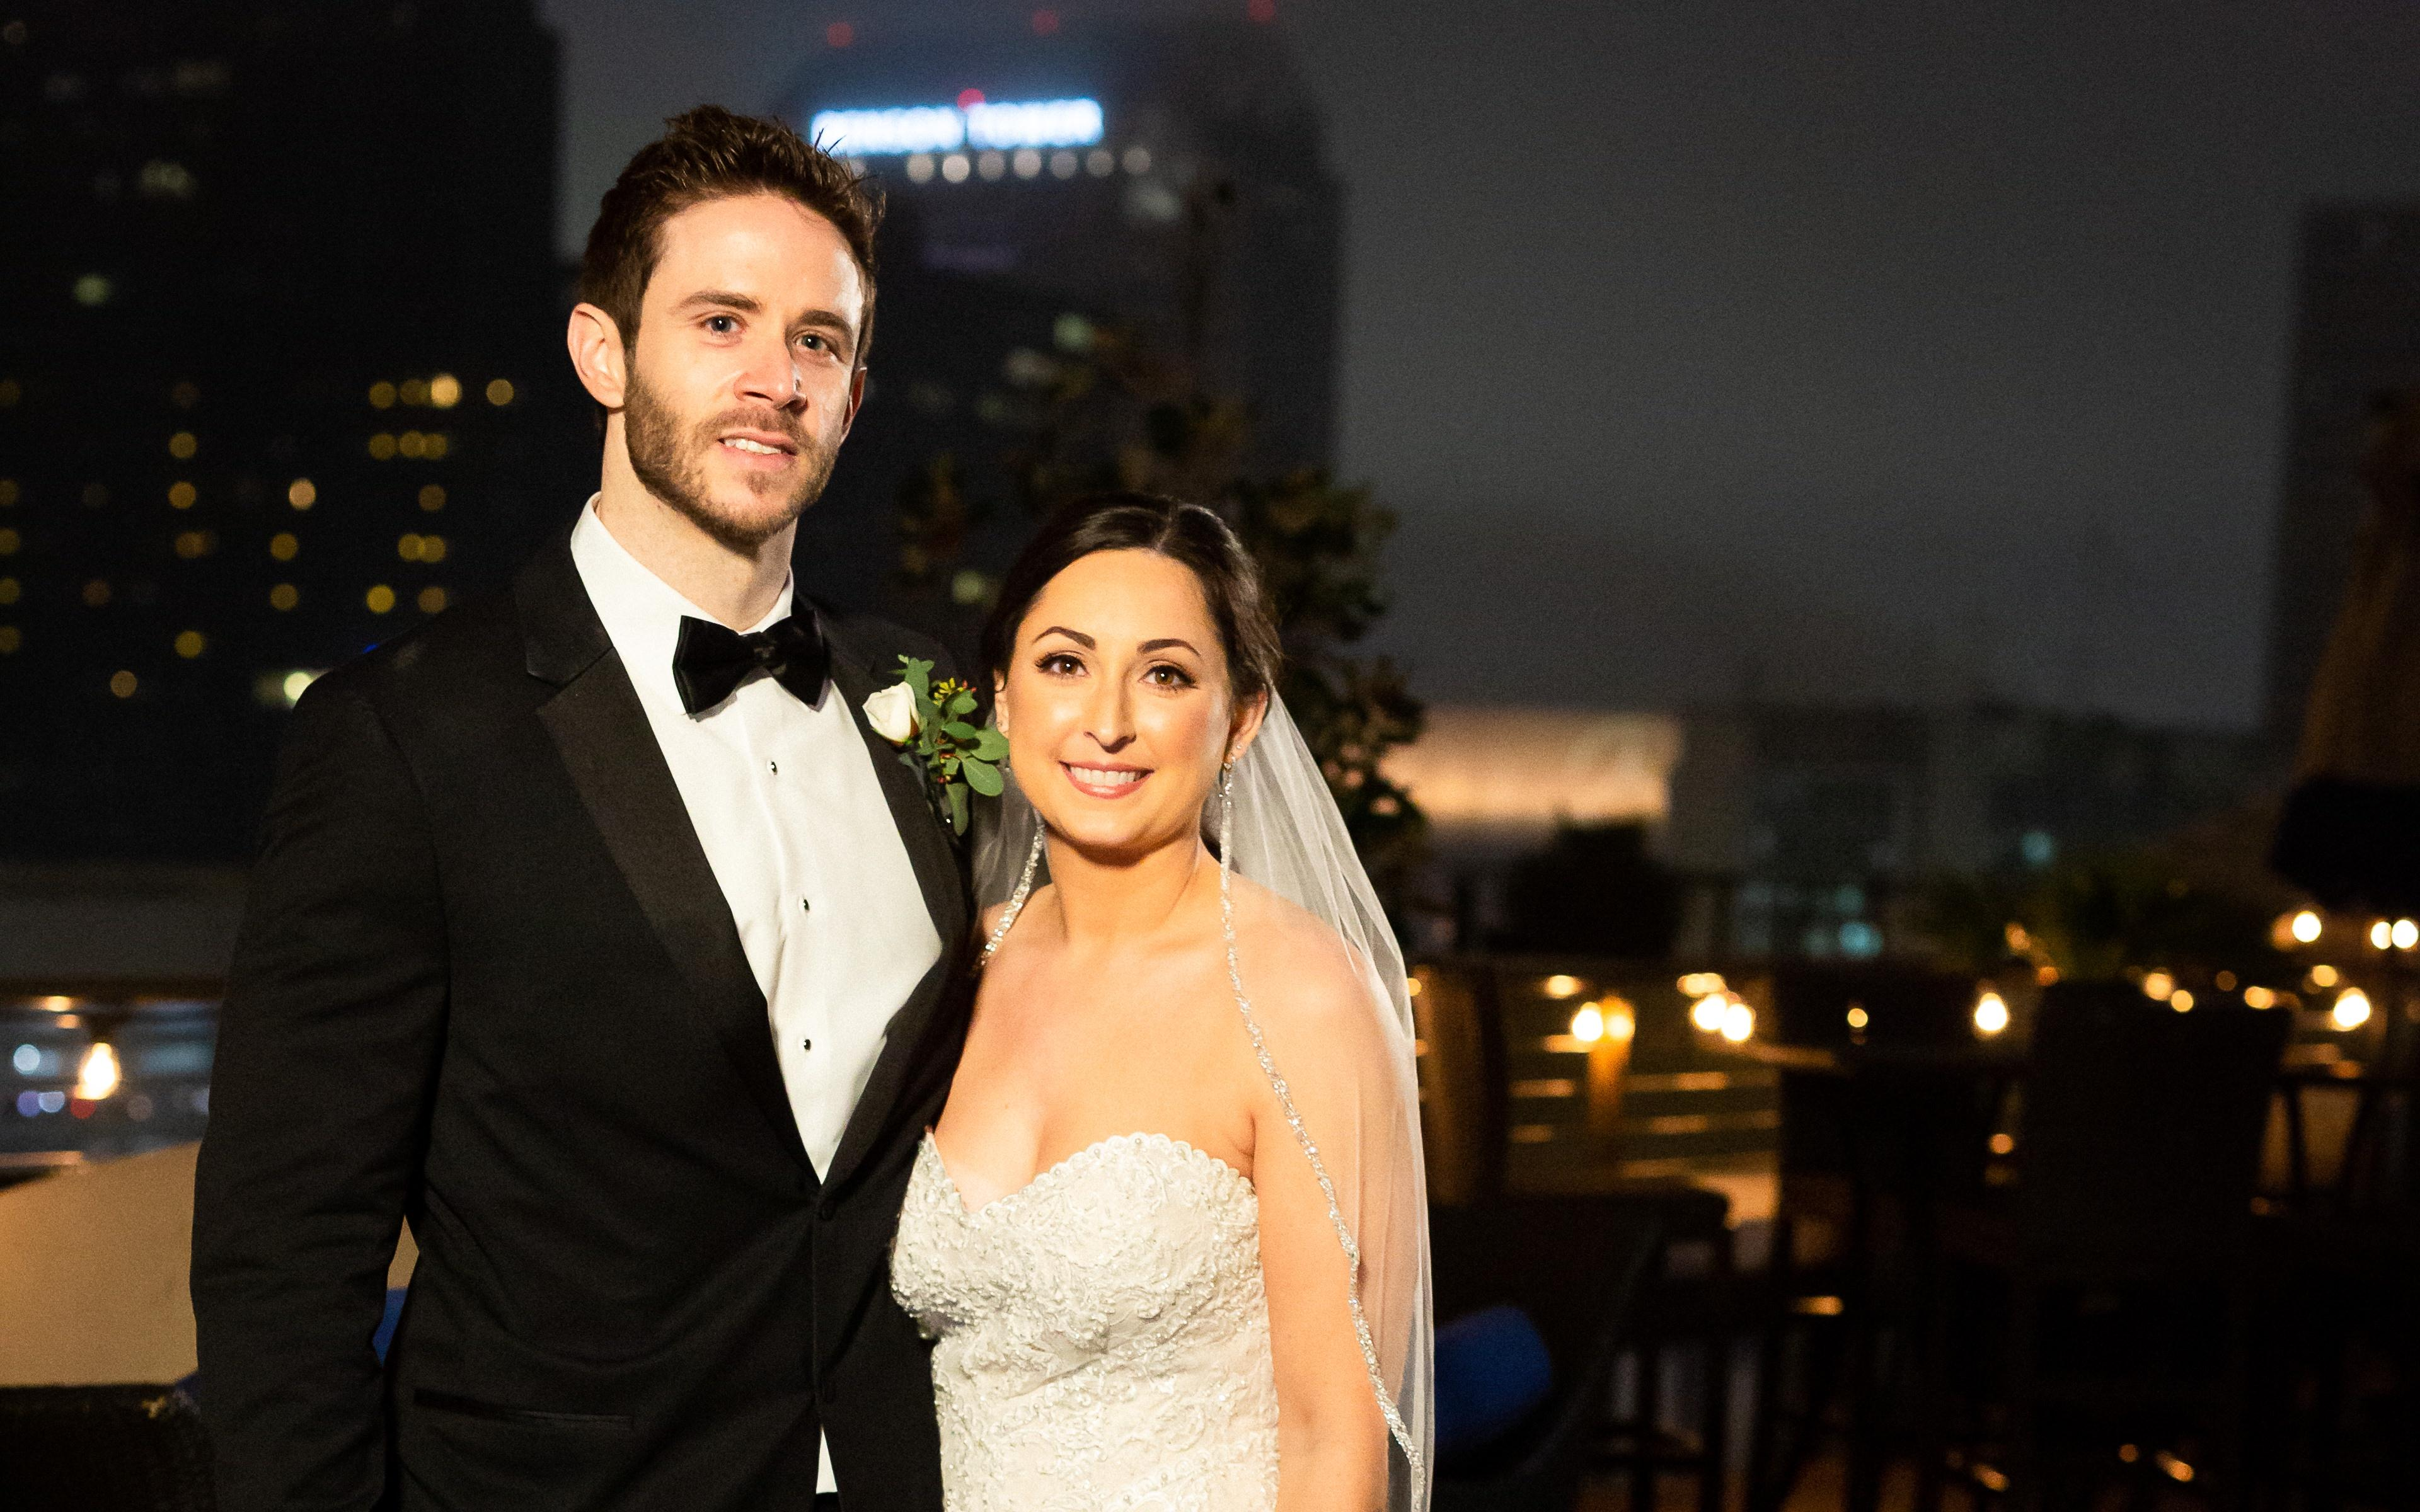 Brett and Olivia Married at First Sight S11